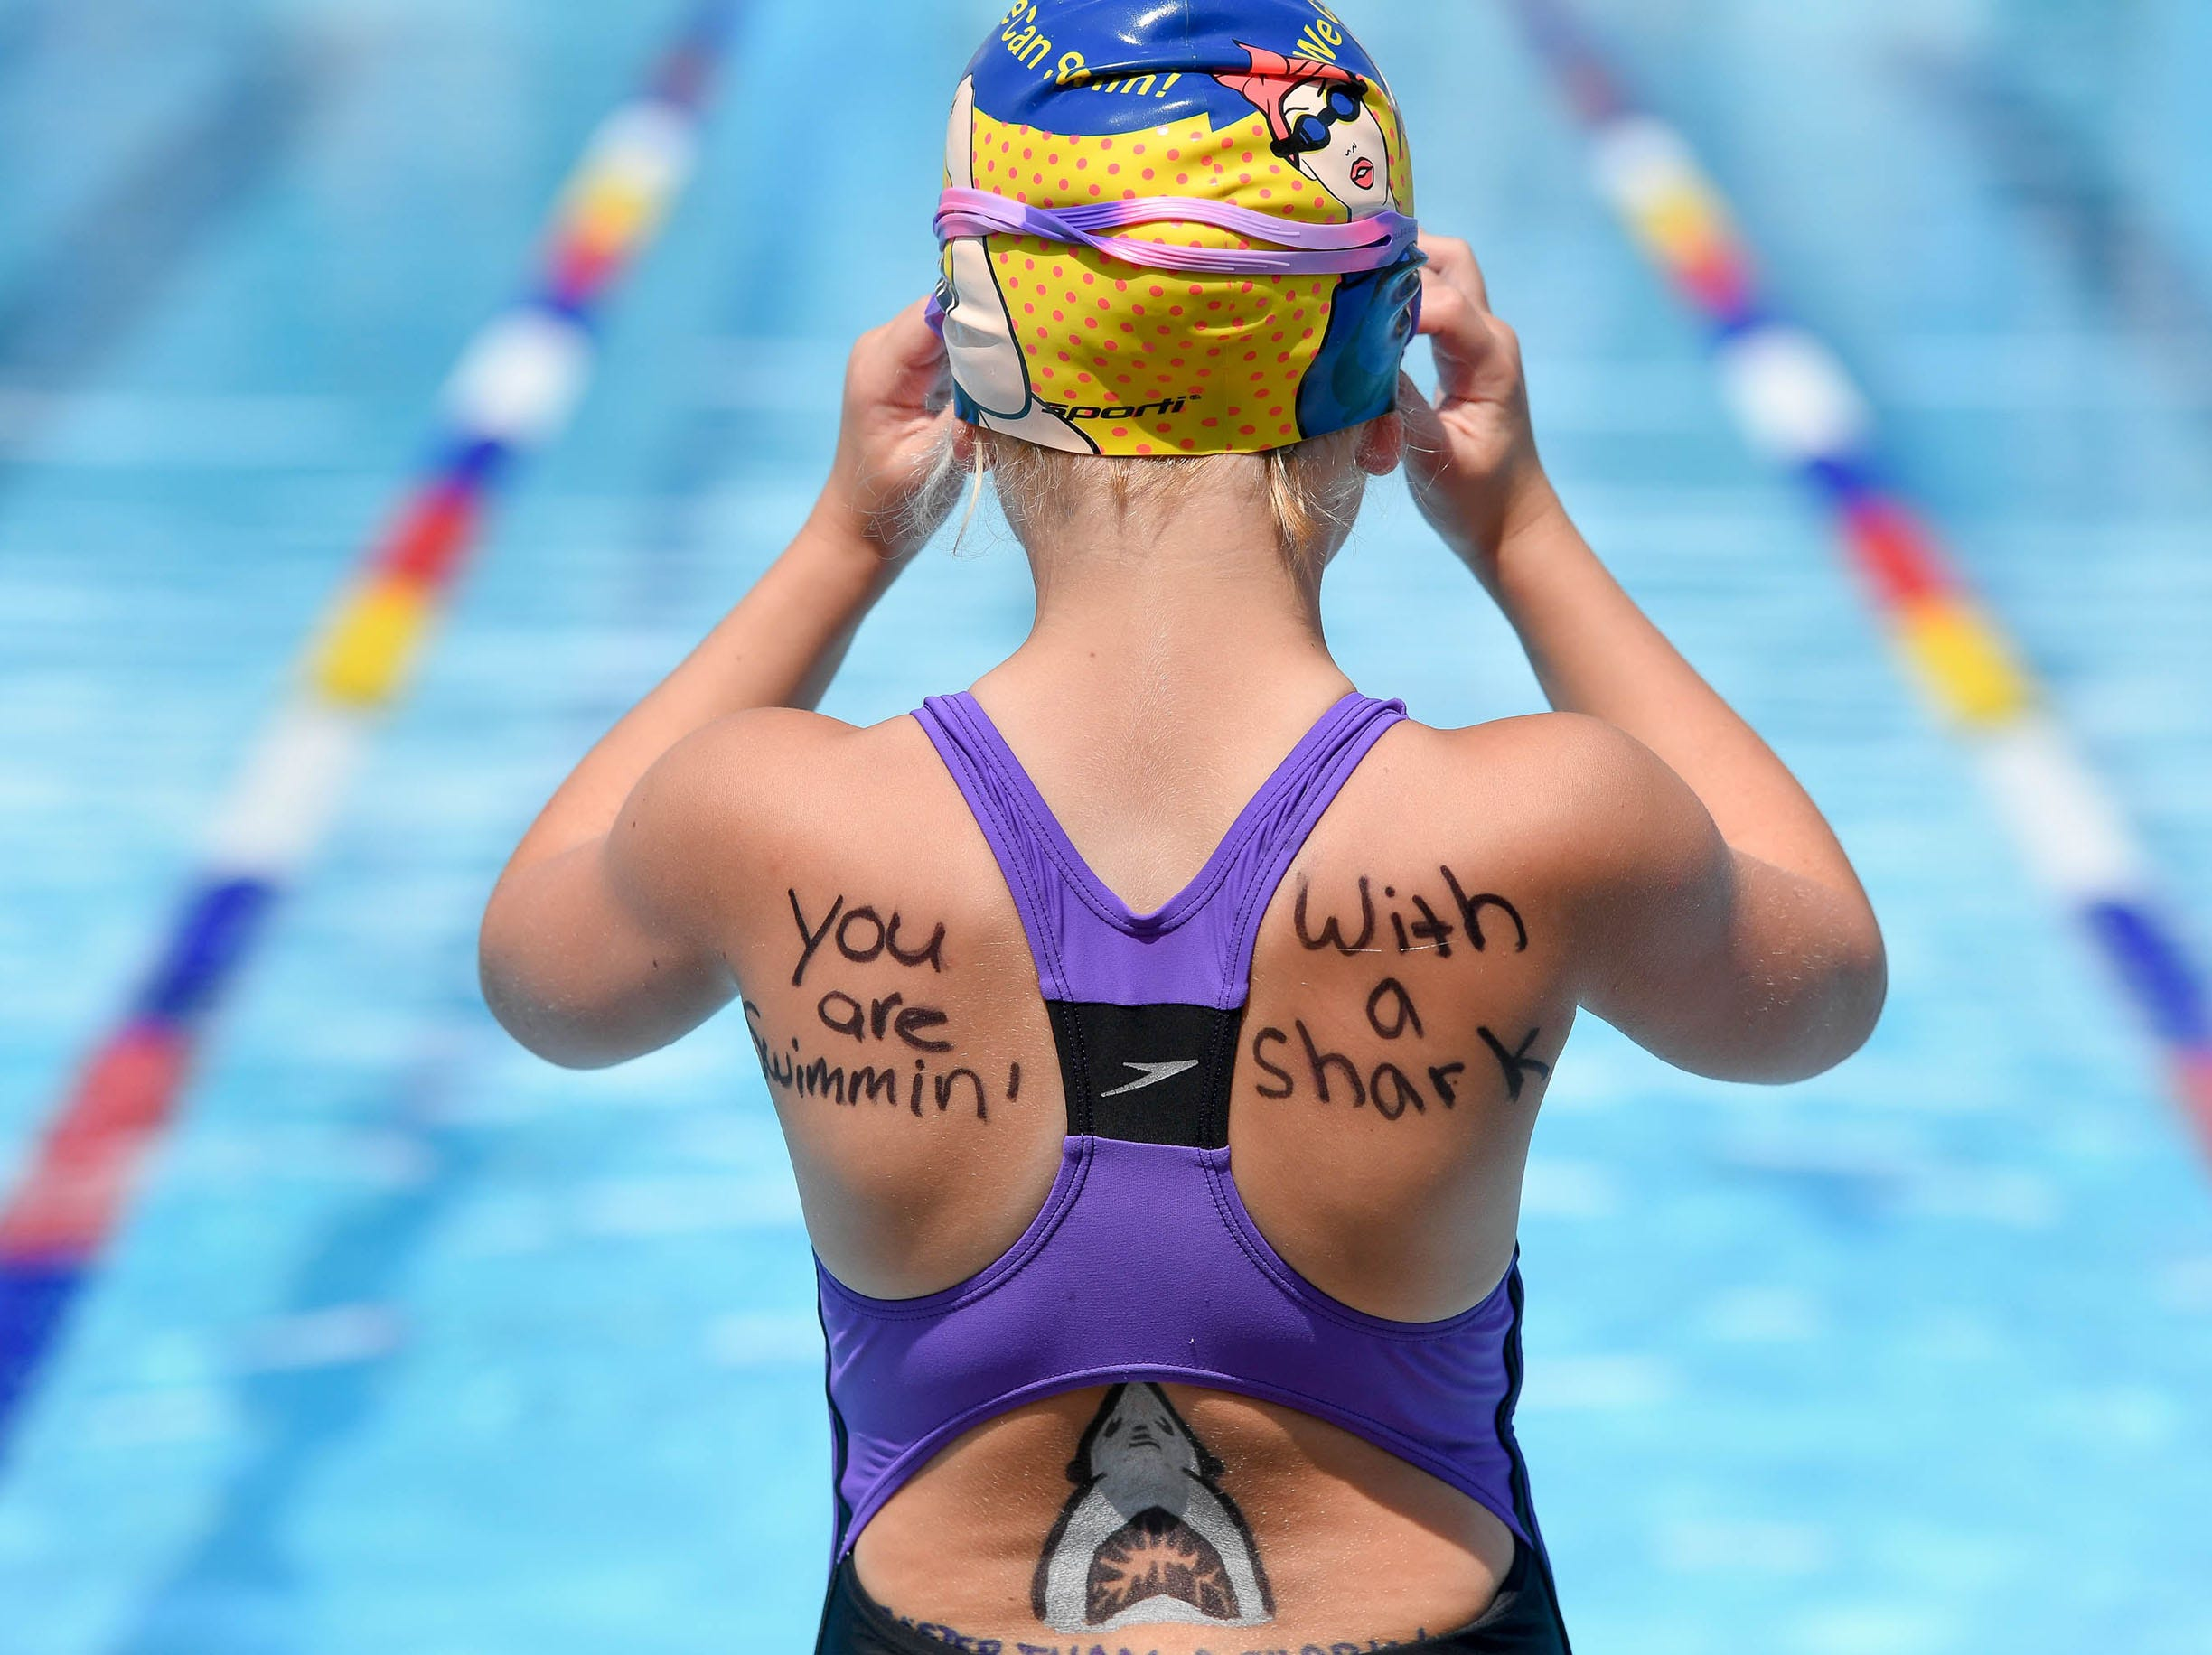 Paige Hoefling adjusts her goggles before the start of the 7-8 year-old 25 yard Butterfly during the 2018 City Swim Meet preliminaries held in Evansville's Garvin Park Saturday. The meet, with nearly 800 swimmers ages 4 to over 65-years-old, continues Sunday with the finals, July 14, 2018.